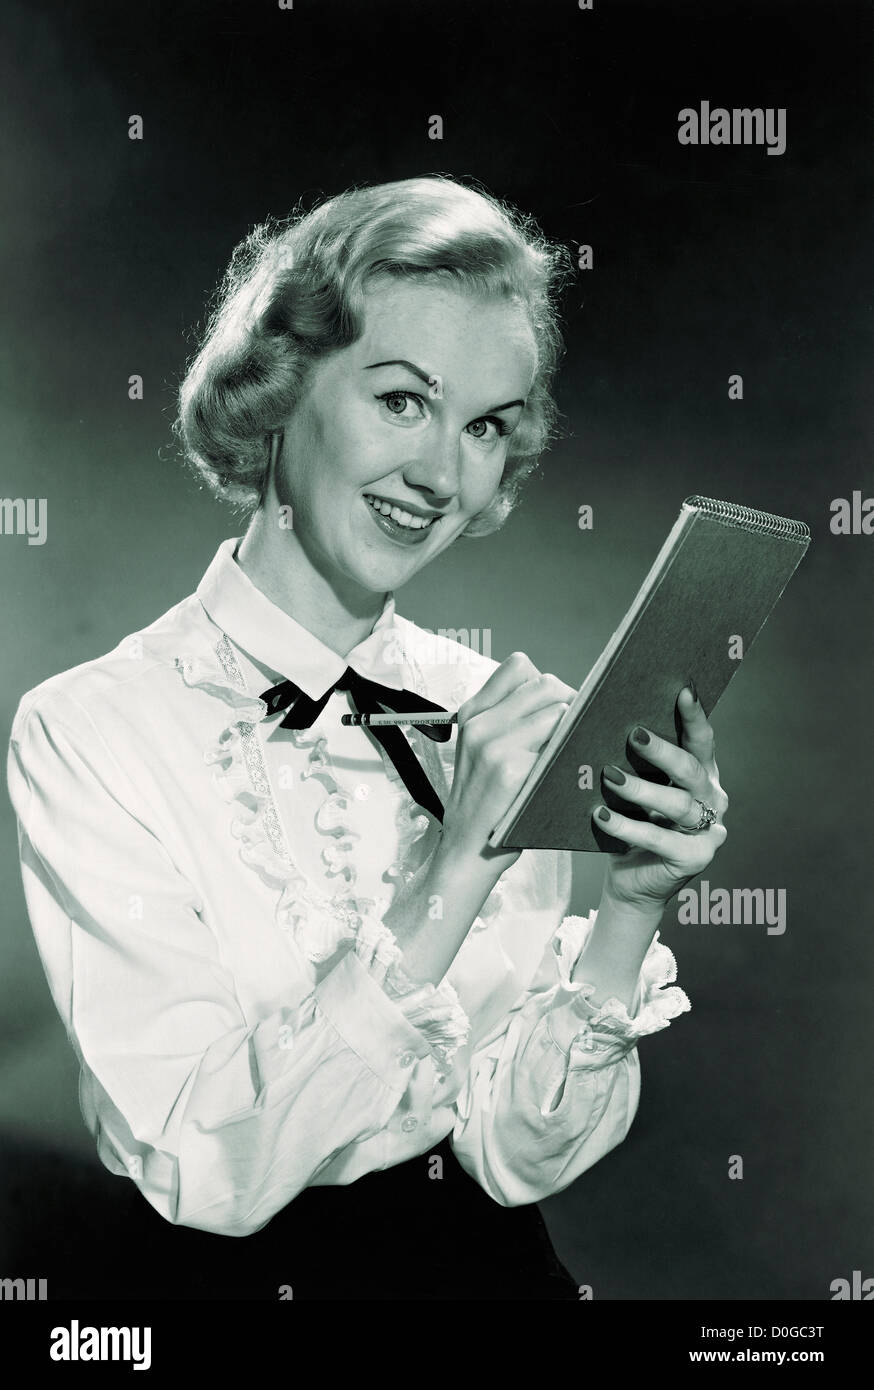 Black and white print of woman taking notes - Stock Image